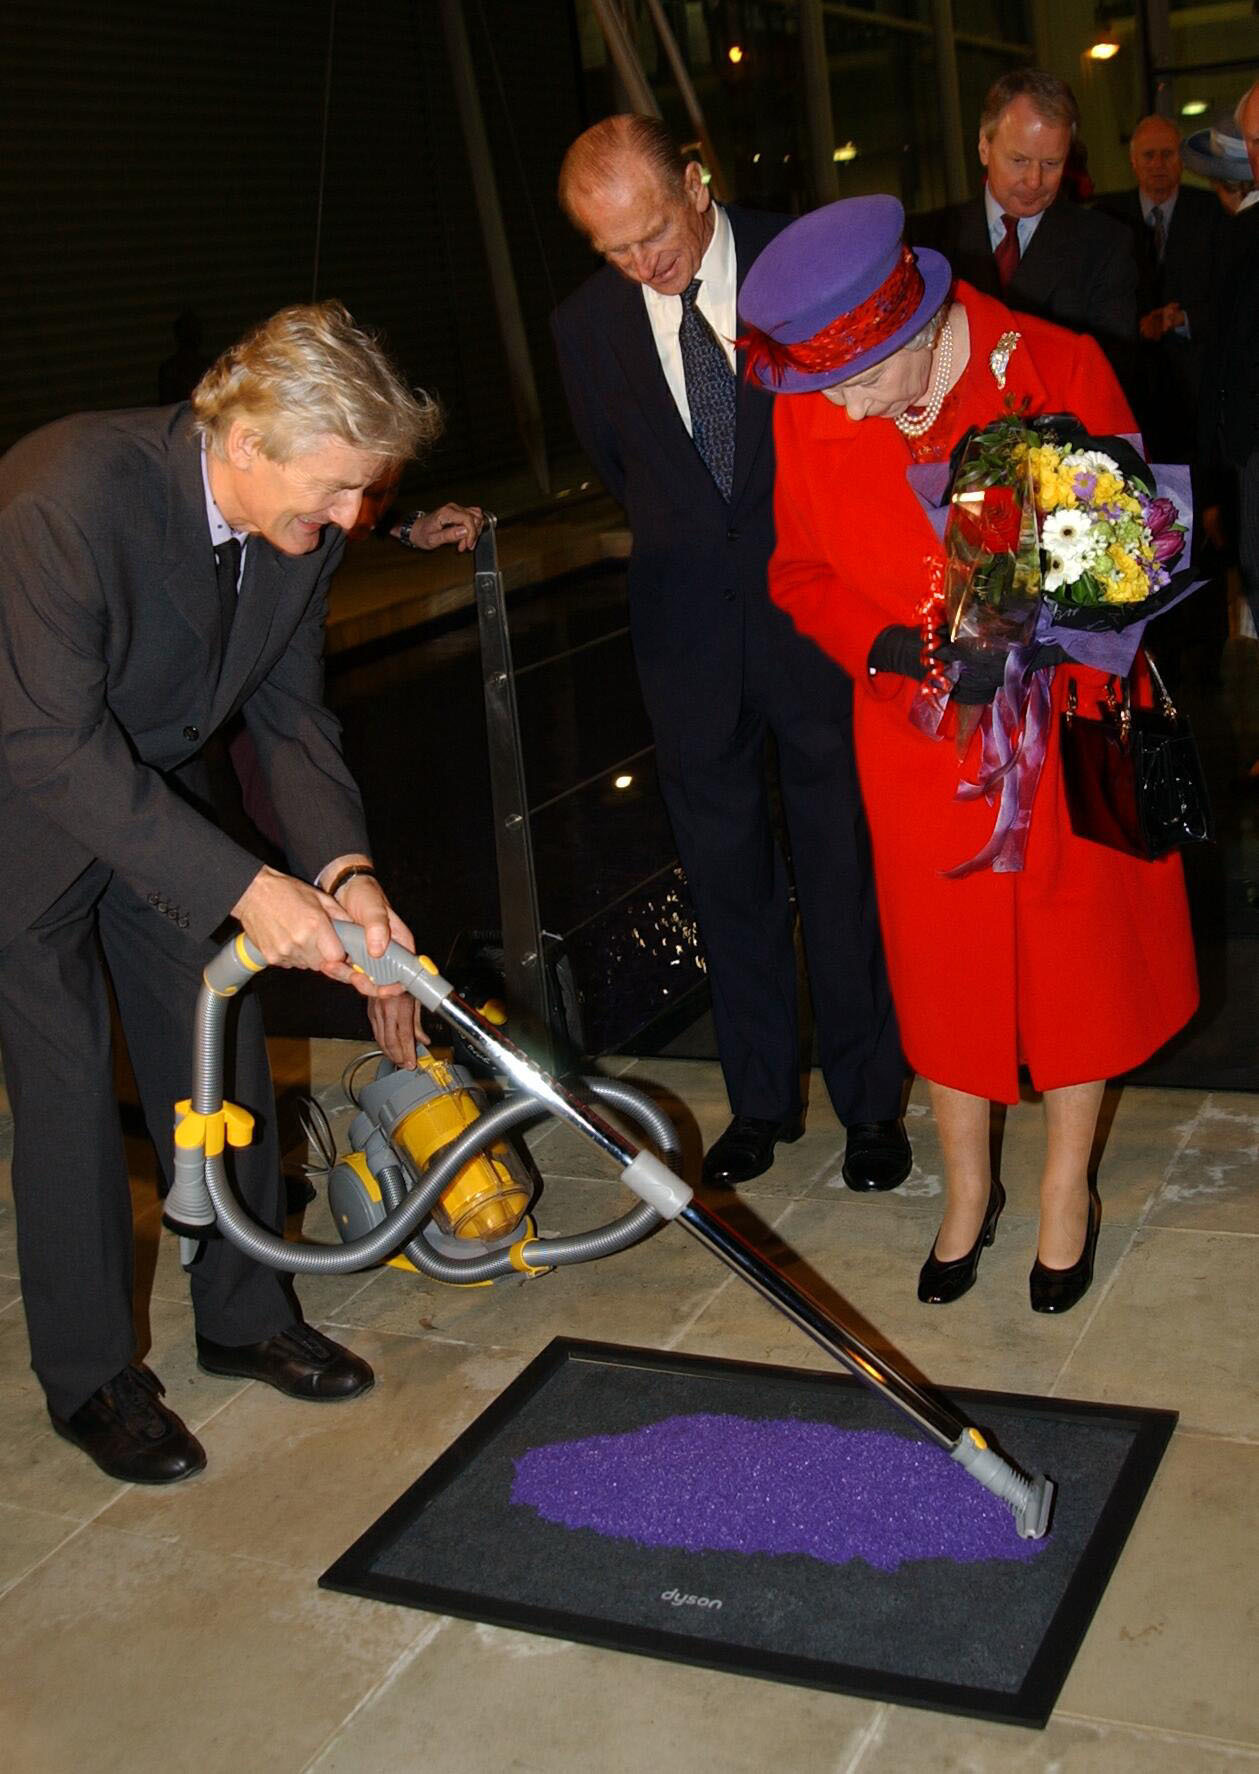 The Queen and the Duke of Edinburgh watch James Dyson unveil a plaque at the vacuum cleaner maker's Malmesbury factory near Chippenham in Wiltshire, during a visit to the town. She travelled by scheduled train with the Duke of Edinburgh for a day of engagements.  * around the area.